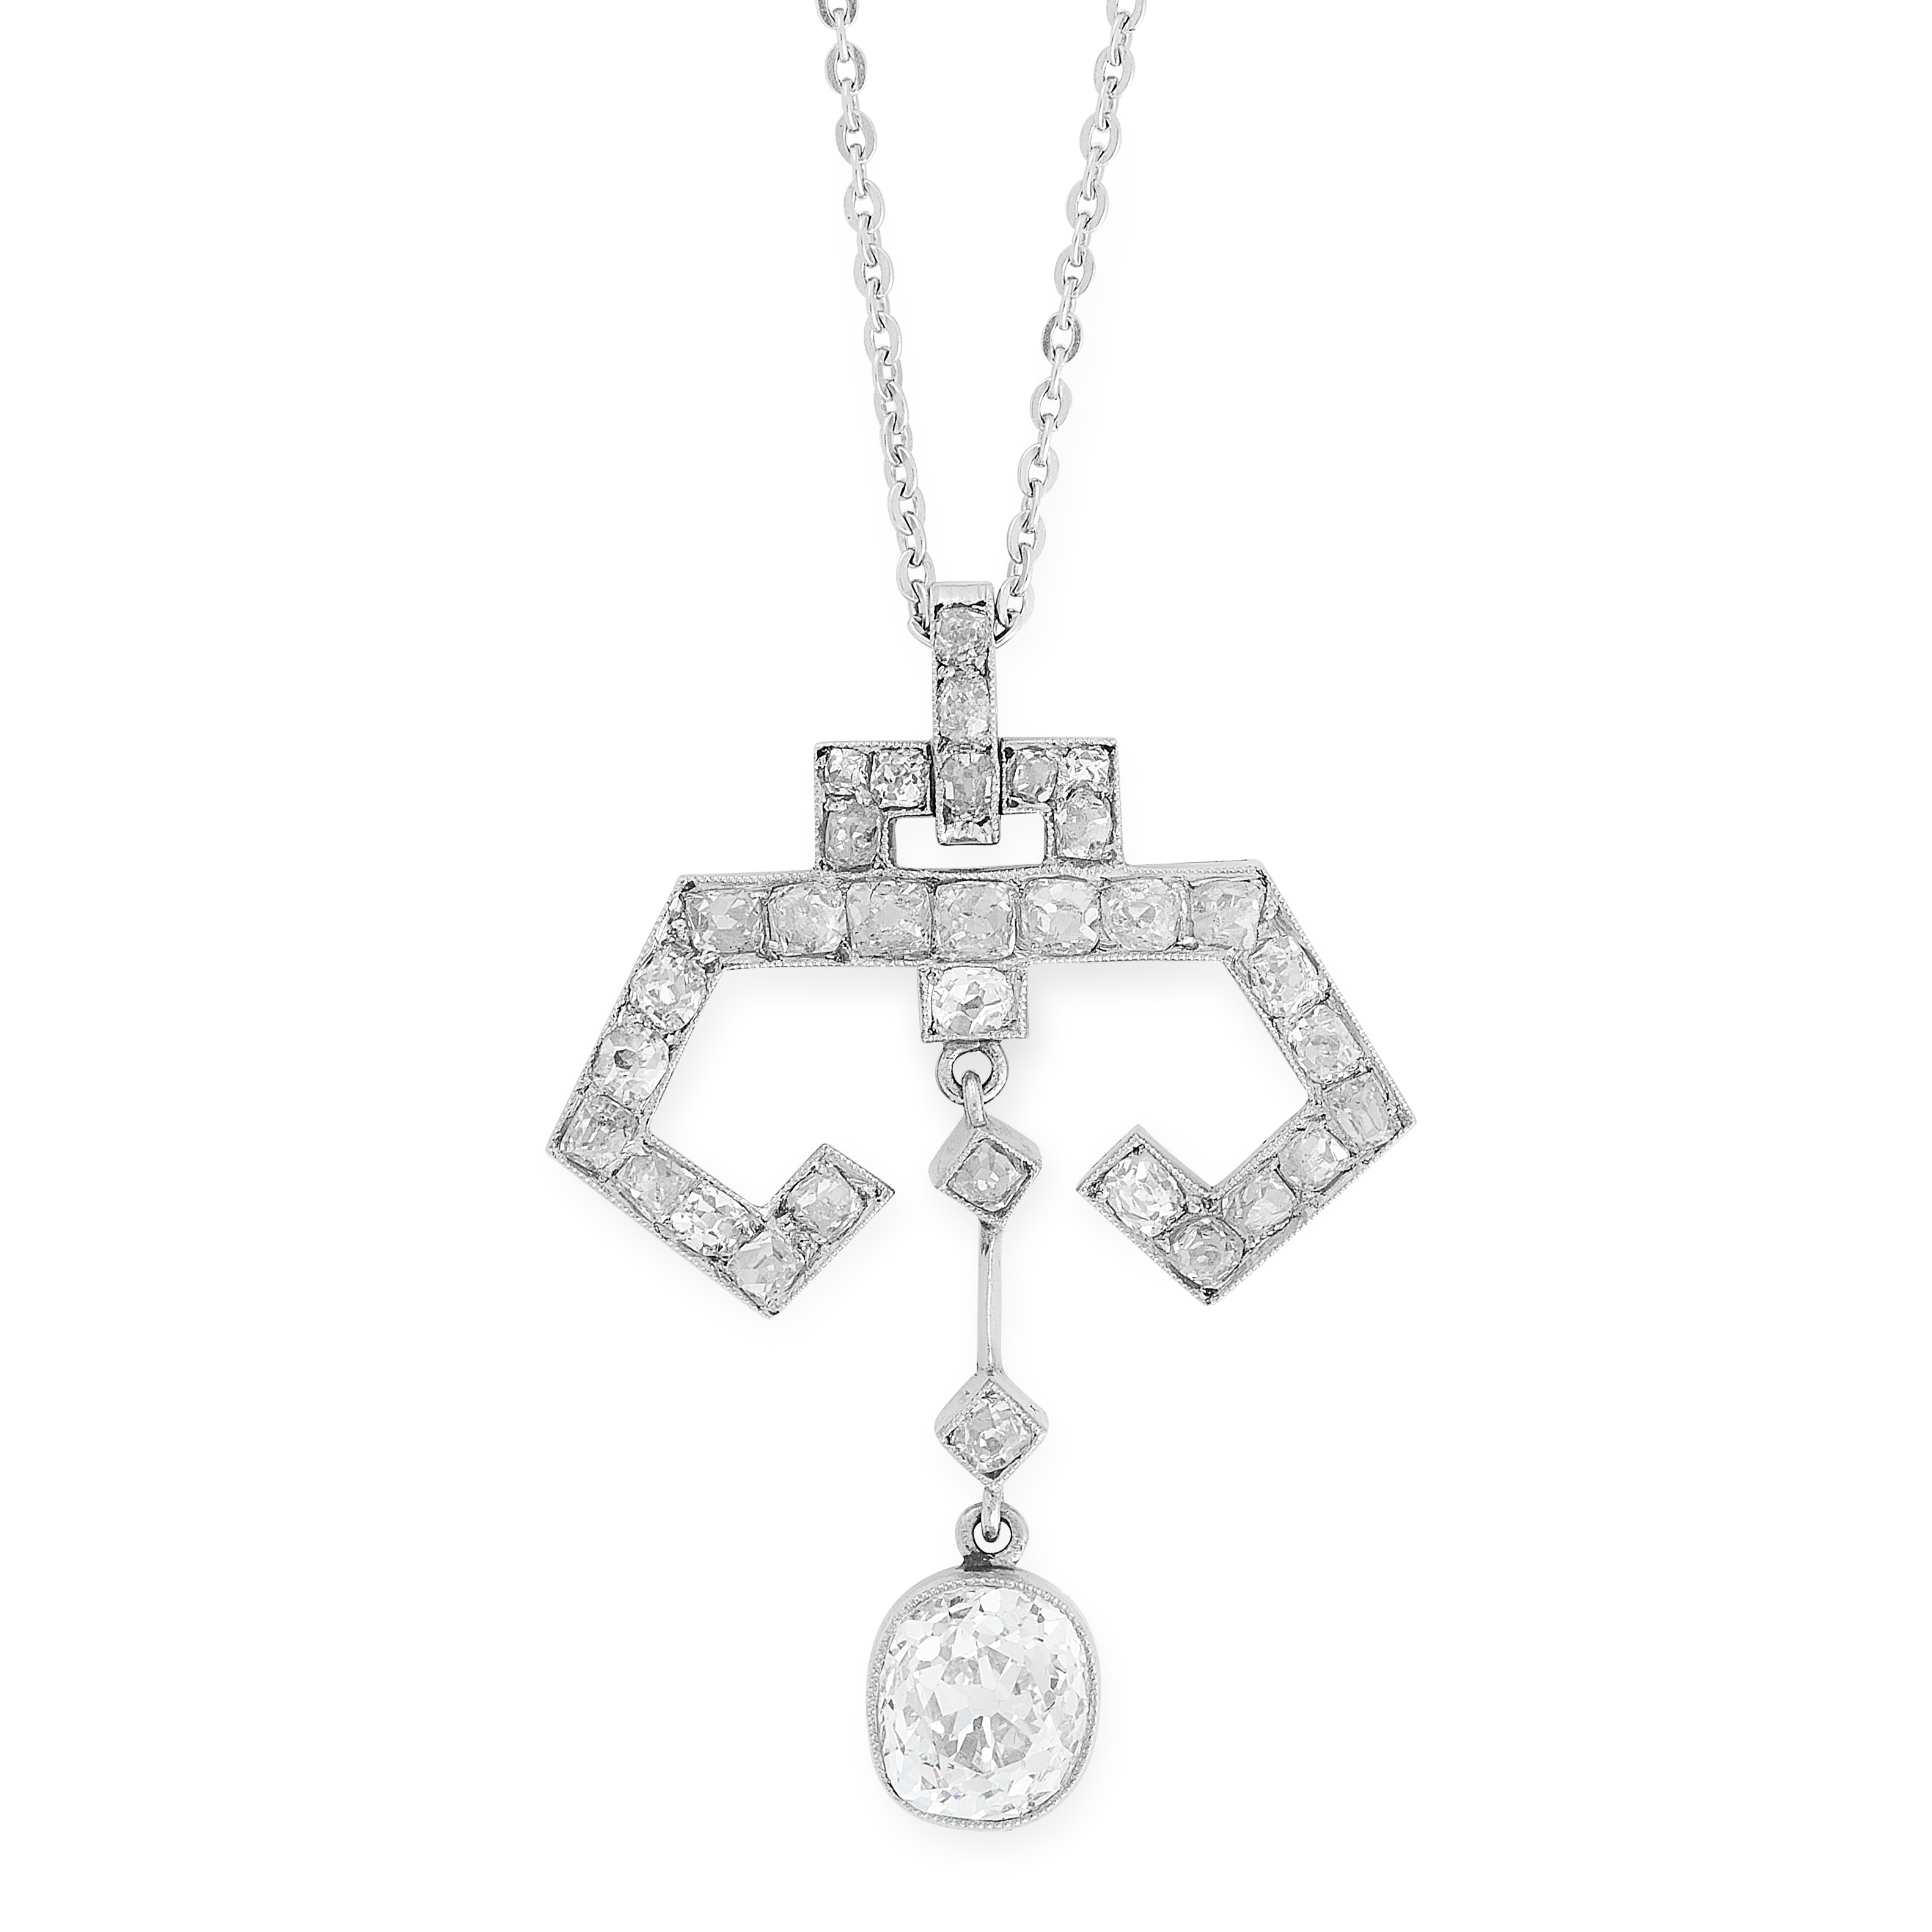 AN ART DECO DIAMOND PENDANT AND CHAIN, EARLY 20TH CENTURY in 18ct white gold, set with an old cut